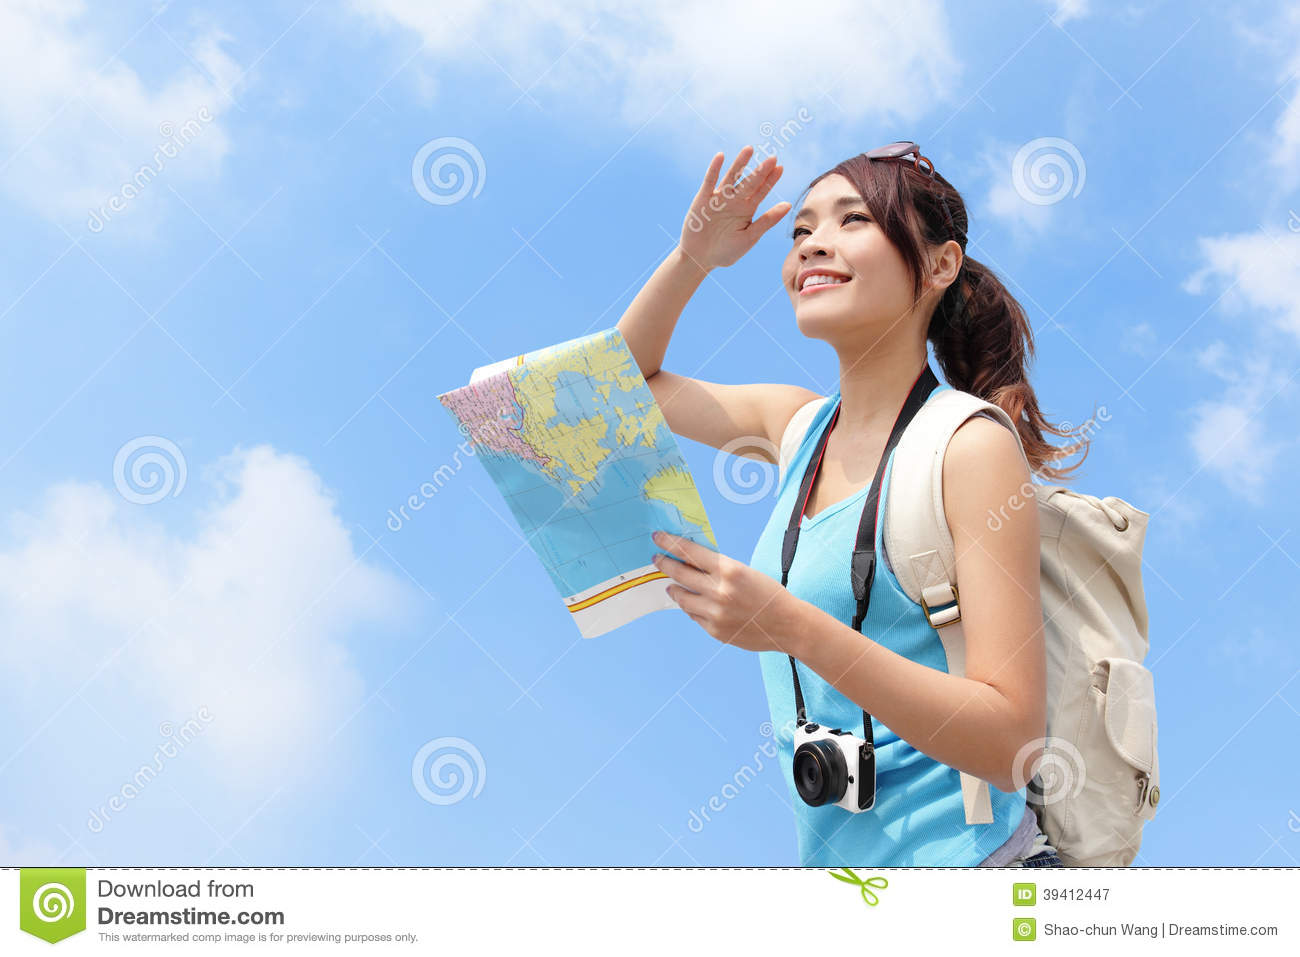 happy-travel-woman-look-map-copy-space-sky-background-asian-39412447.jpg